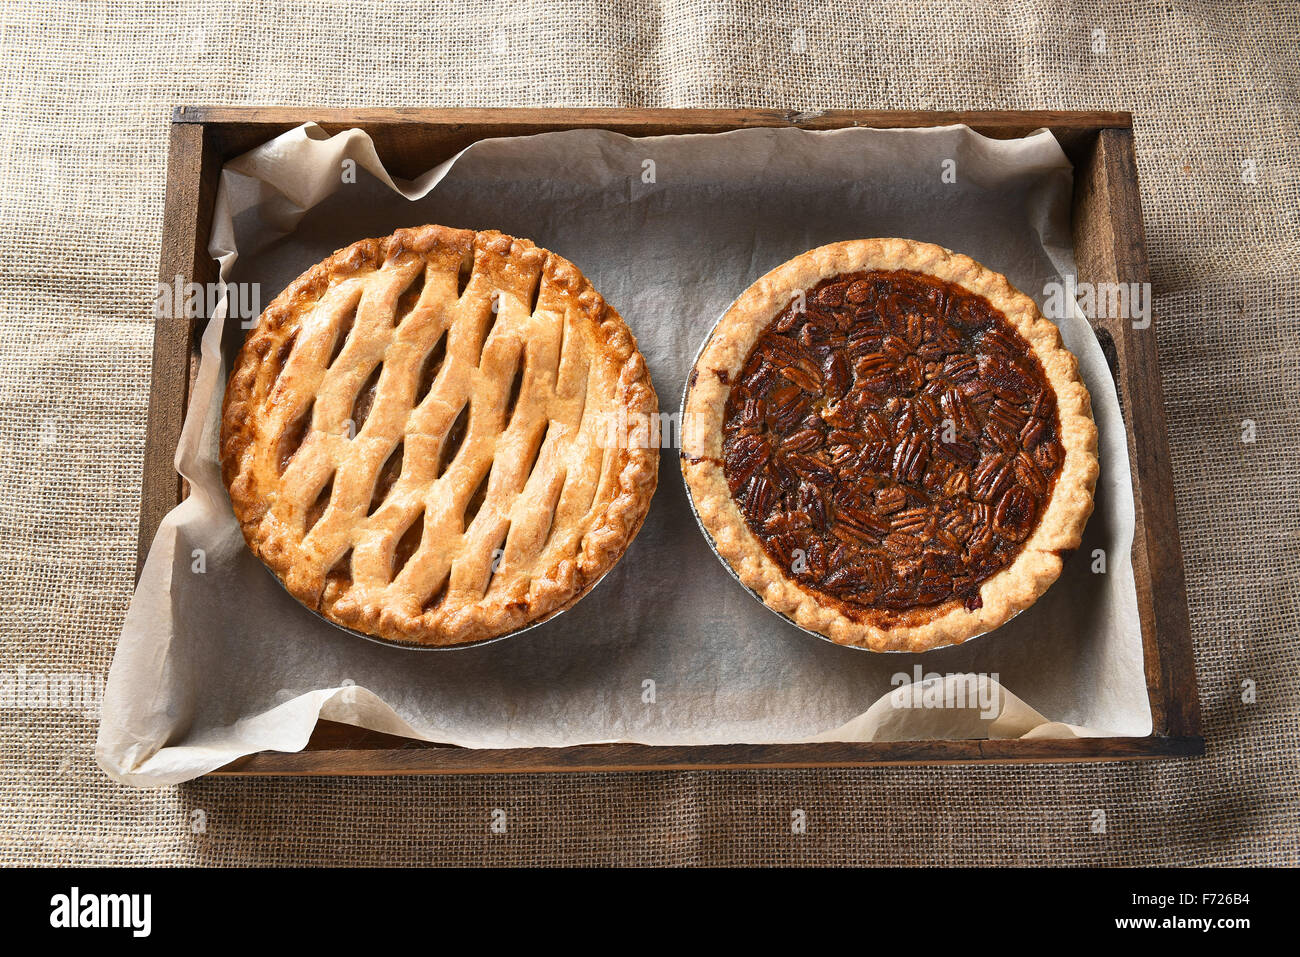 High angle view of an apple pie and pecan pie in a wood box lined with parchment paper. Horizontal format on a burlap - Stock Image